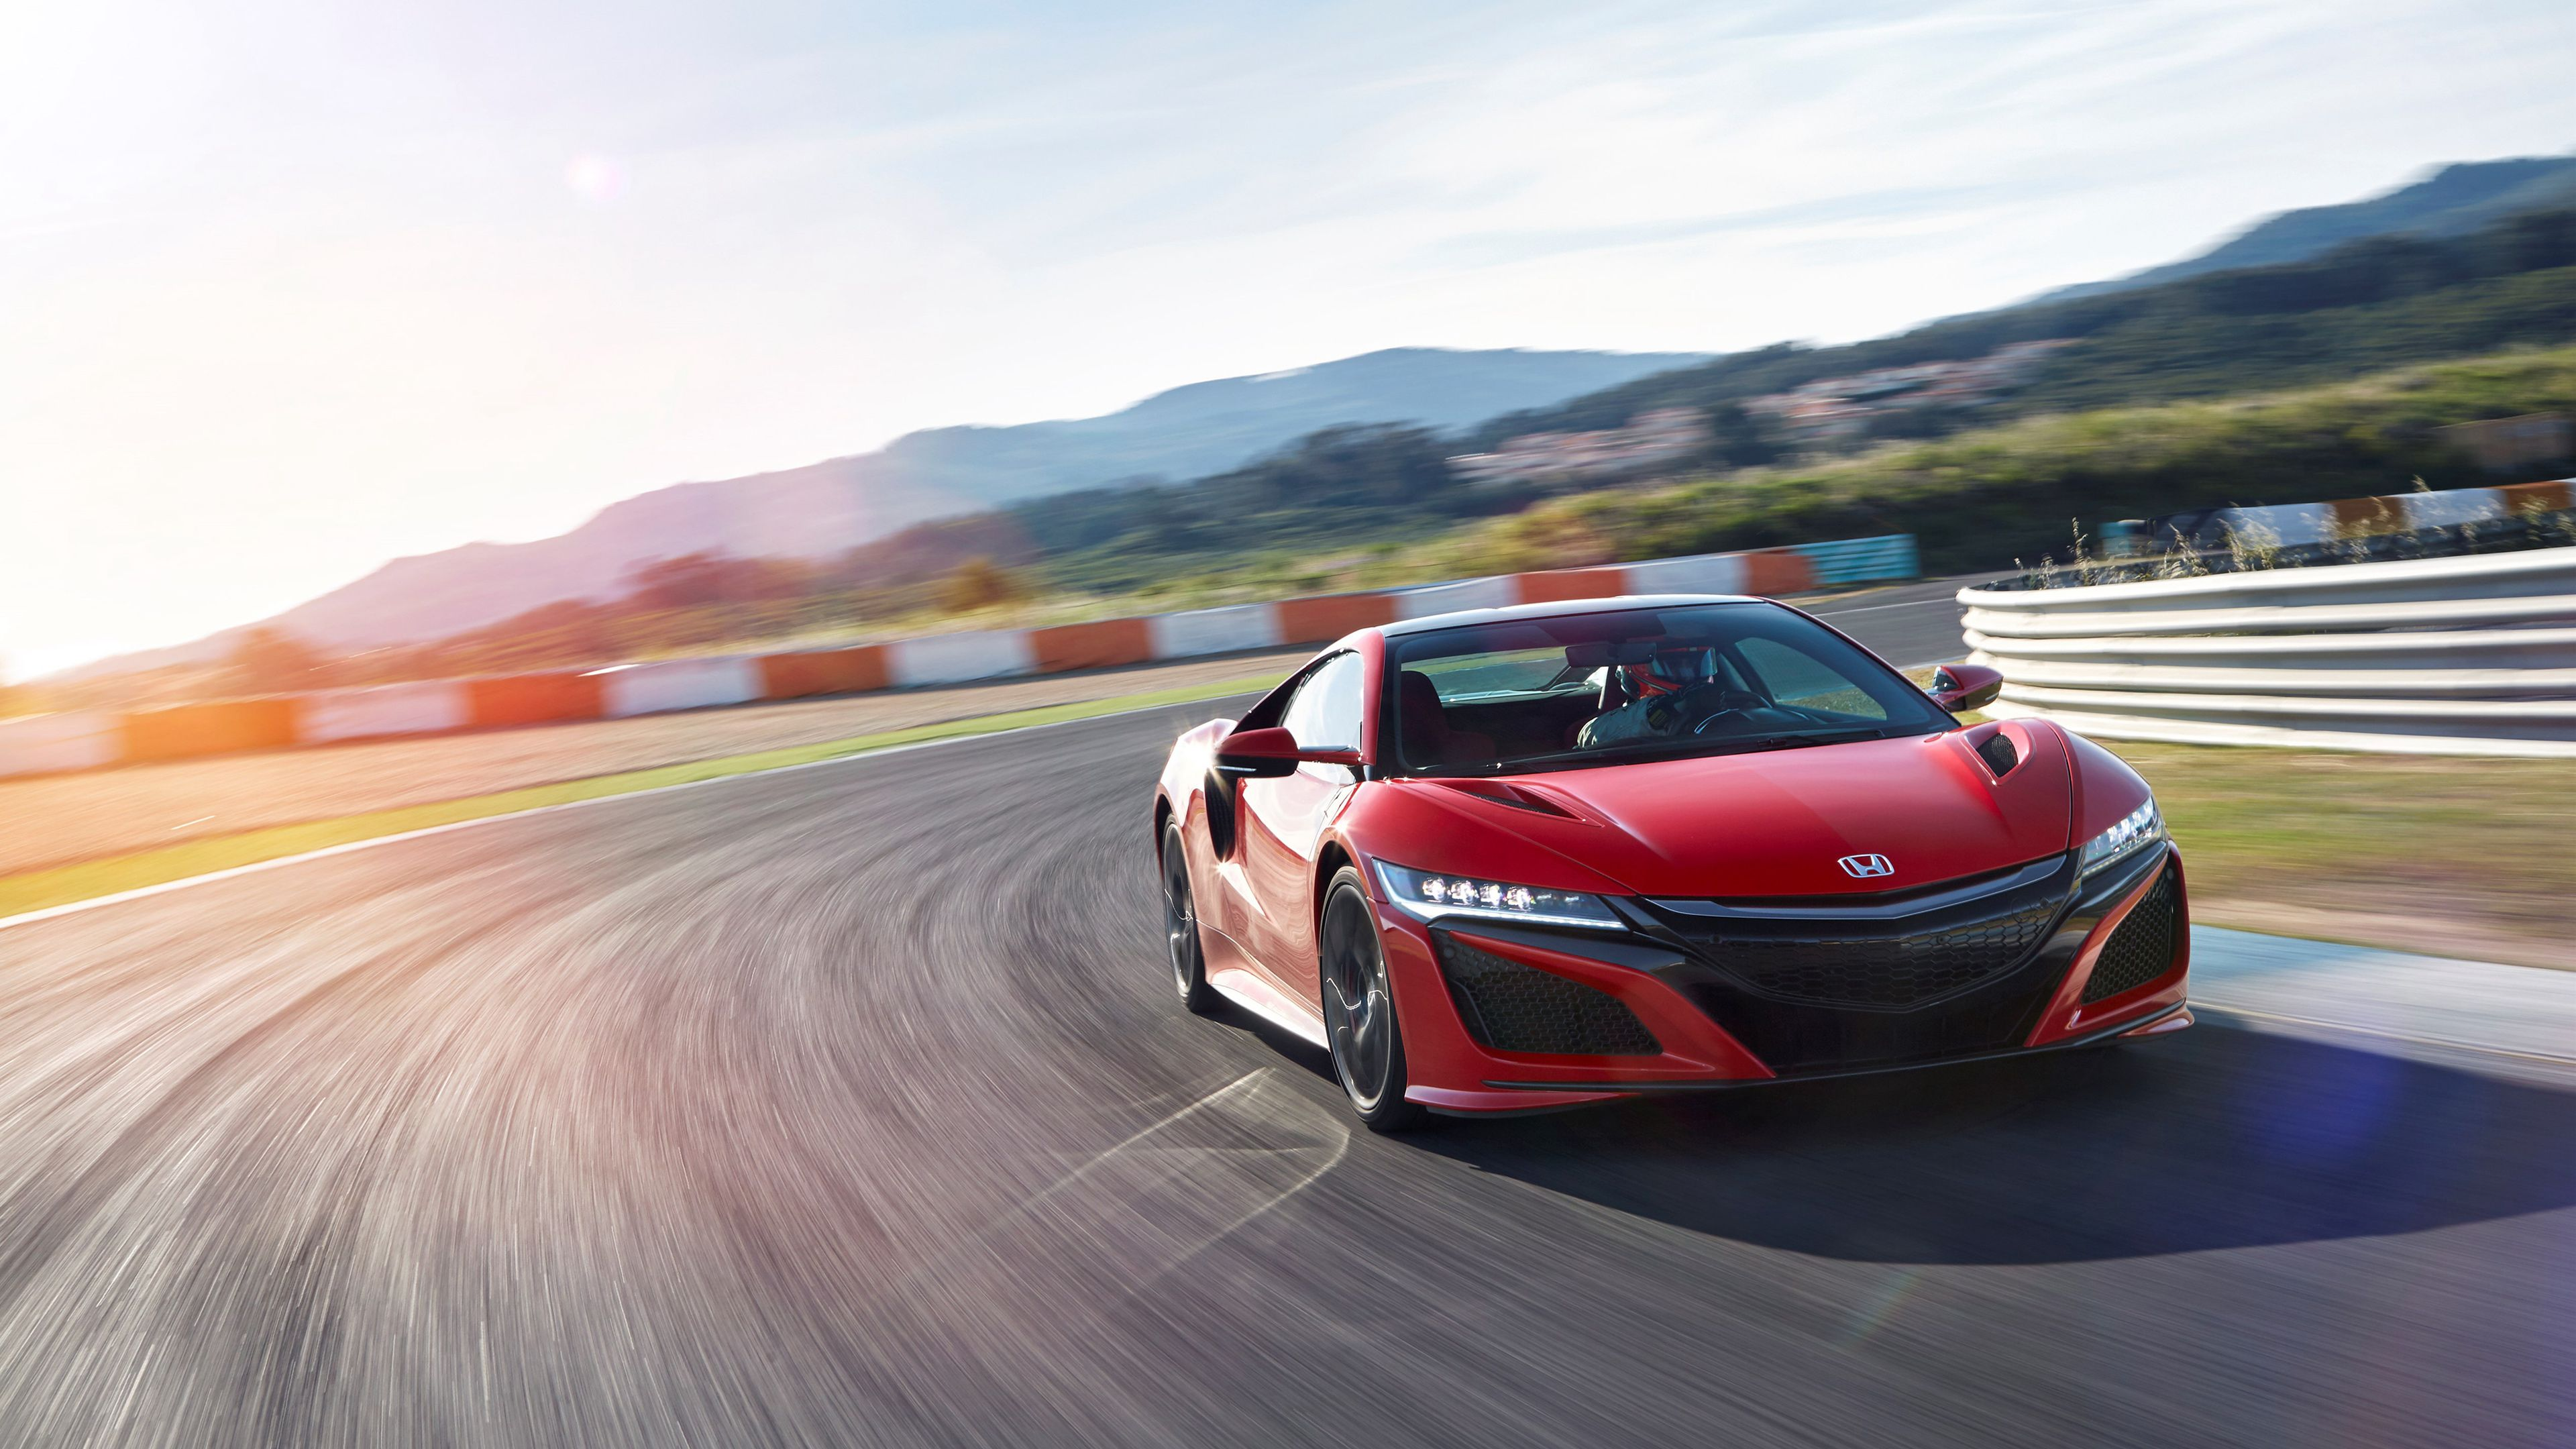 Nsx 4k Wallpapers Top Free Nsx 4k Backgrounds